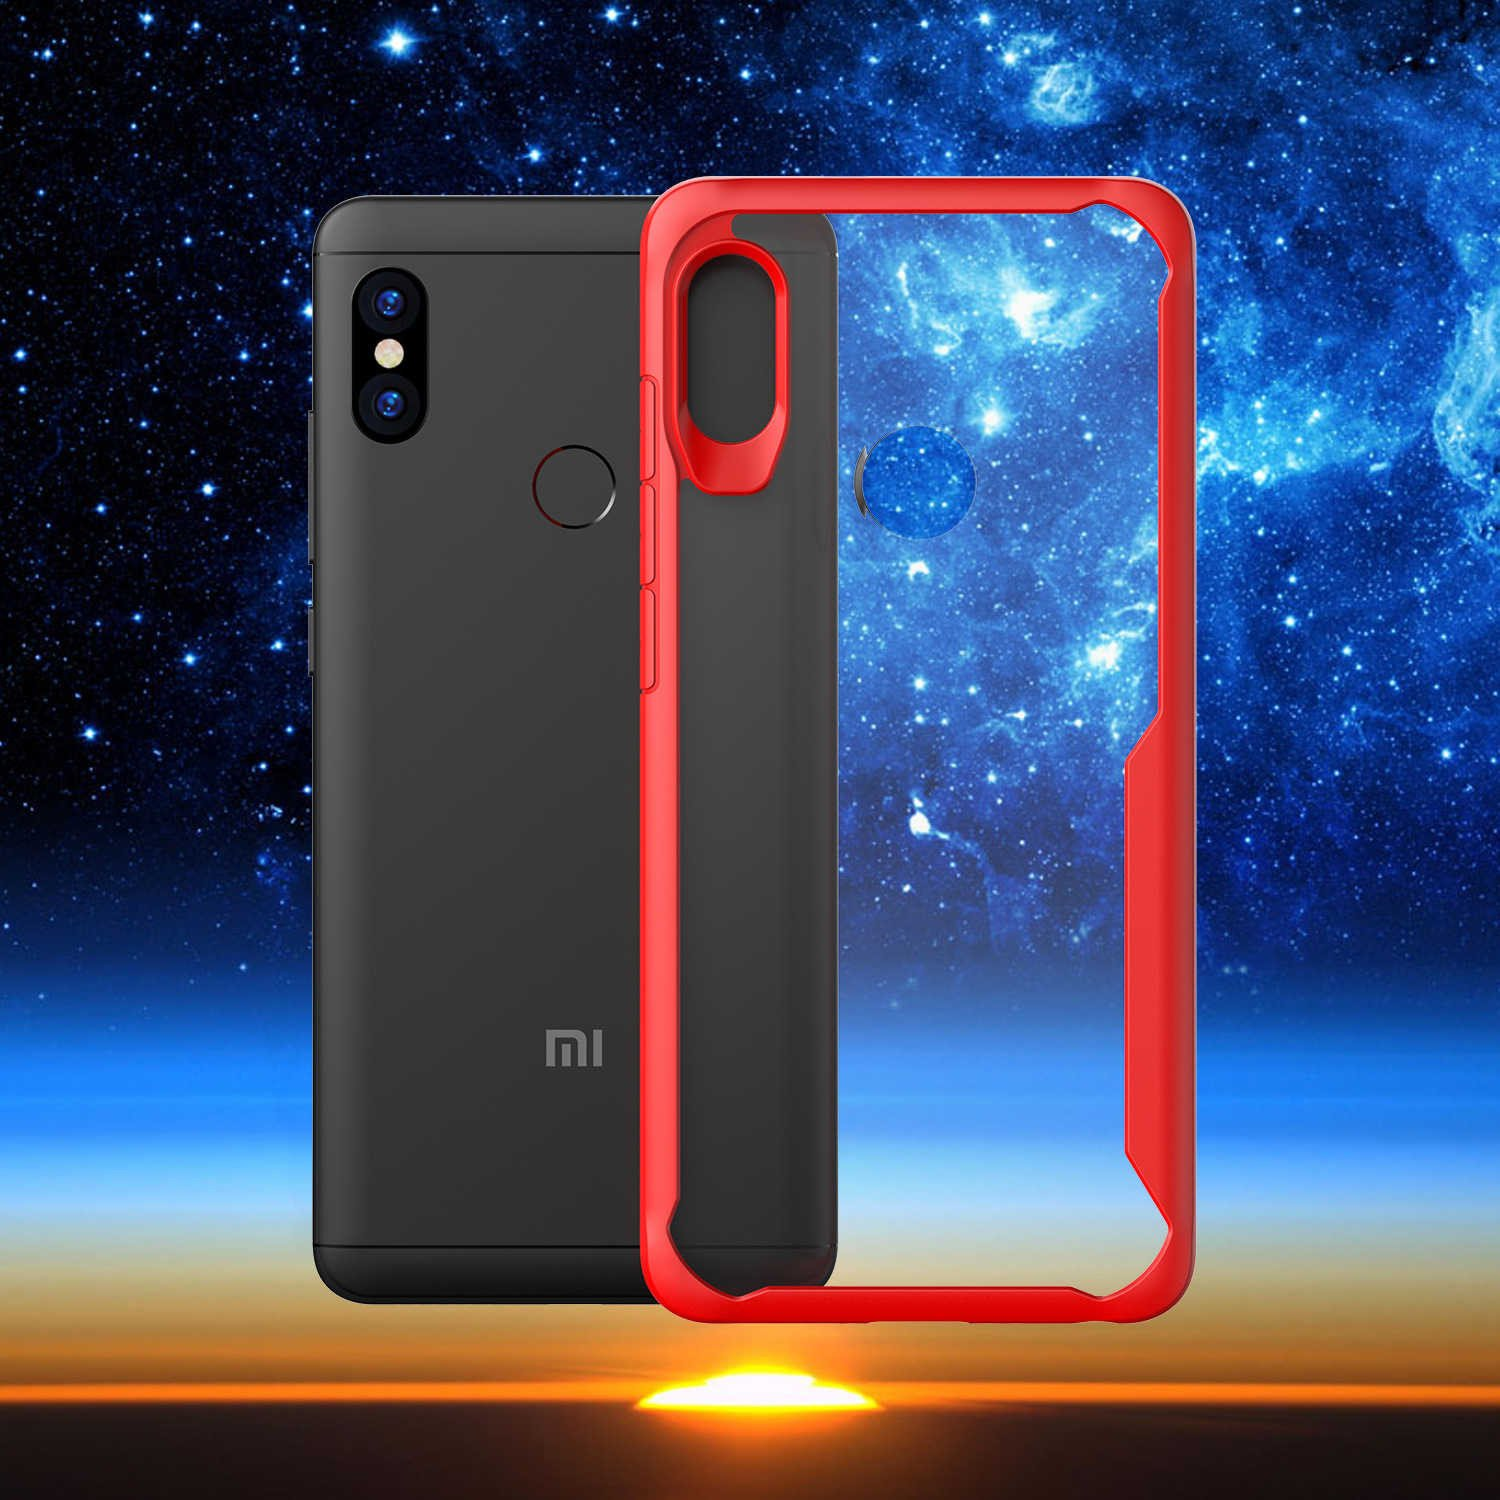 Vaku 174 Xiaomi Redmi Note 5 Pro Defender Glassino Series